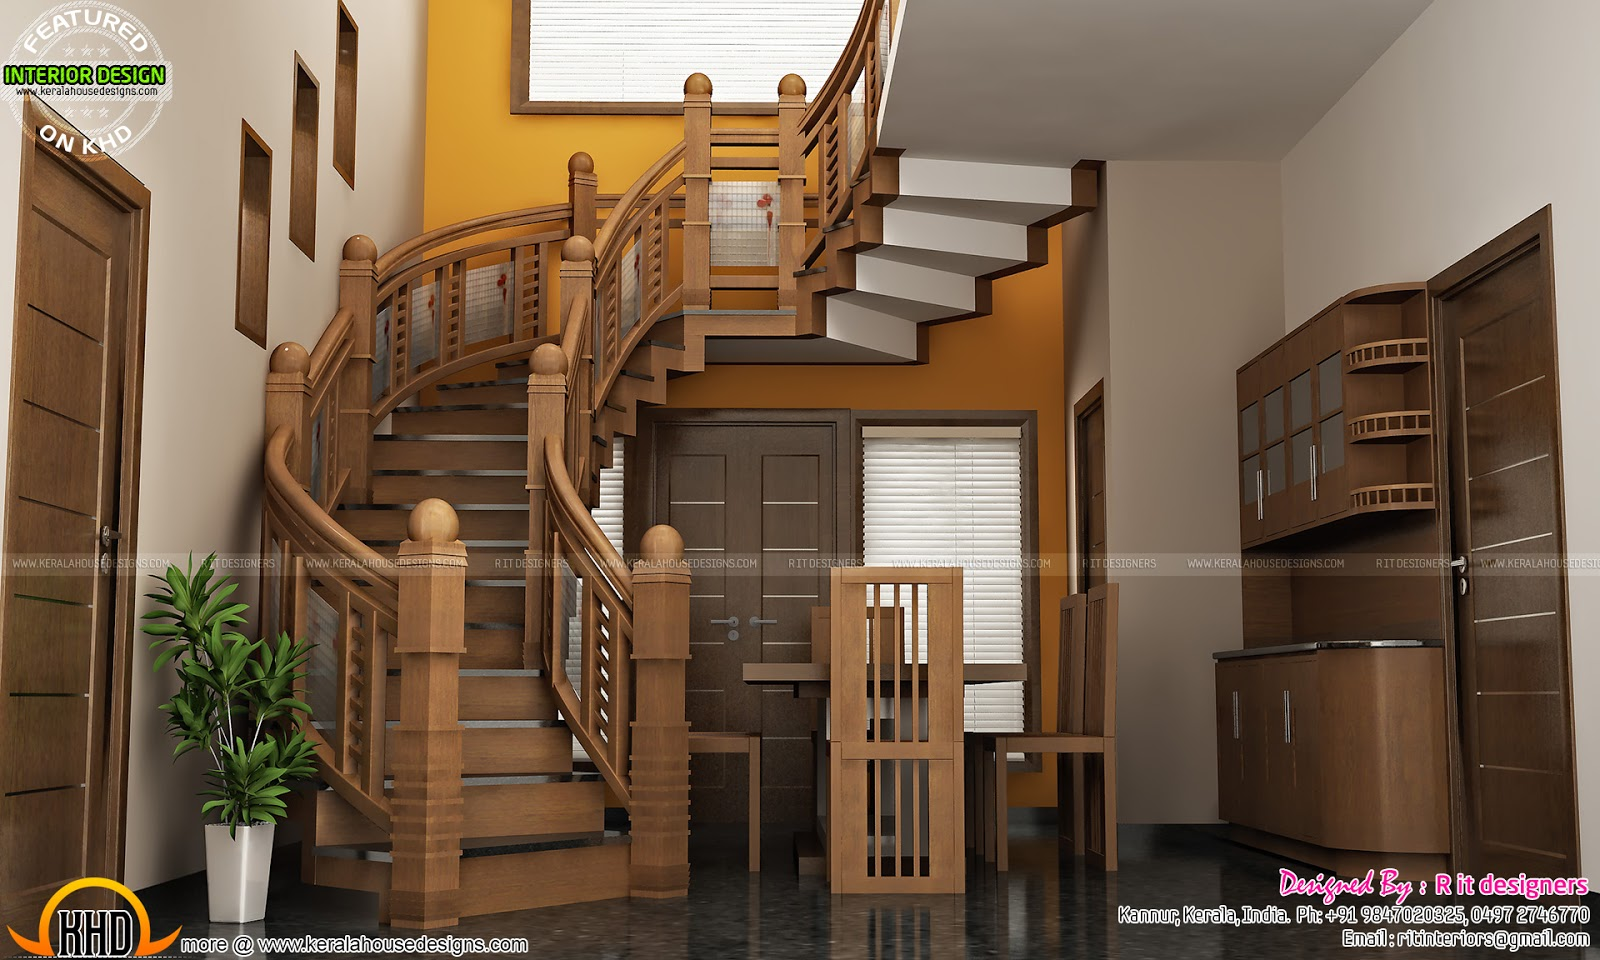 Under stair design wooden stair kitchen and living for How to design a house interior